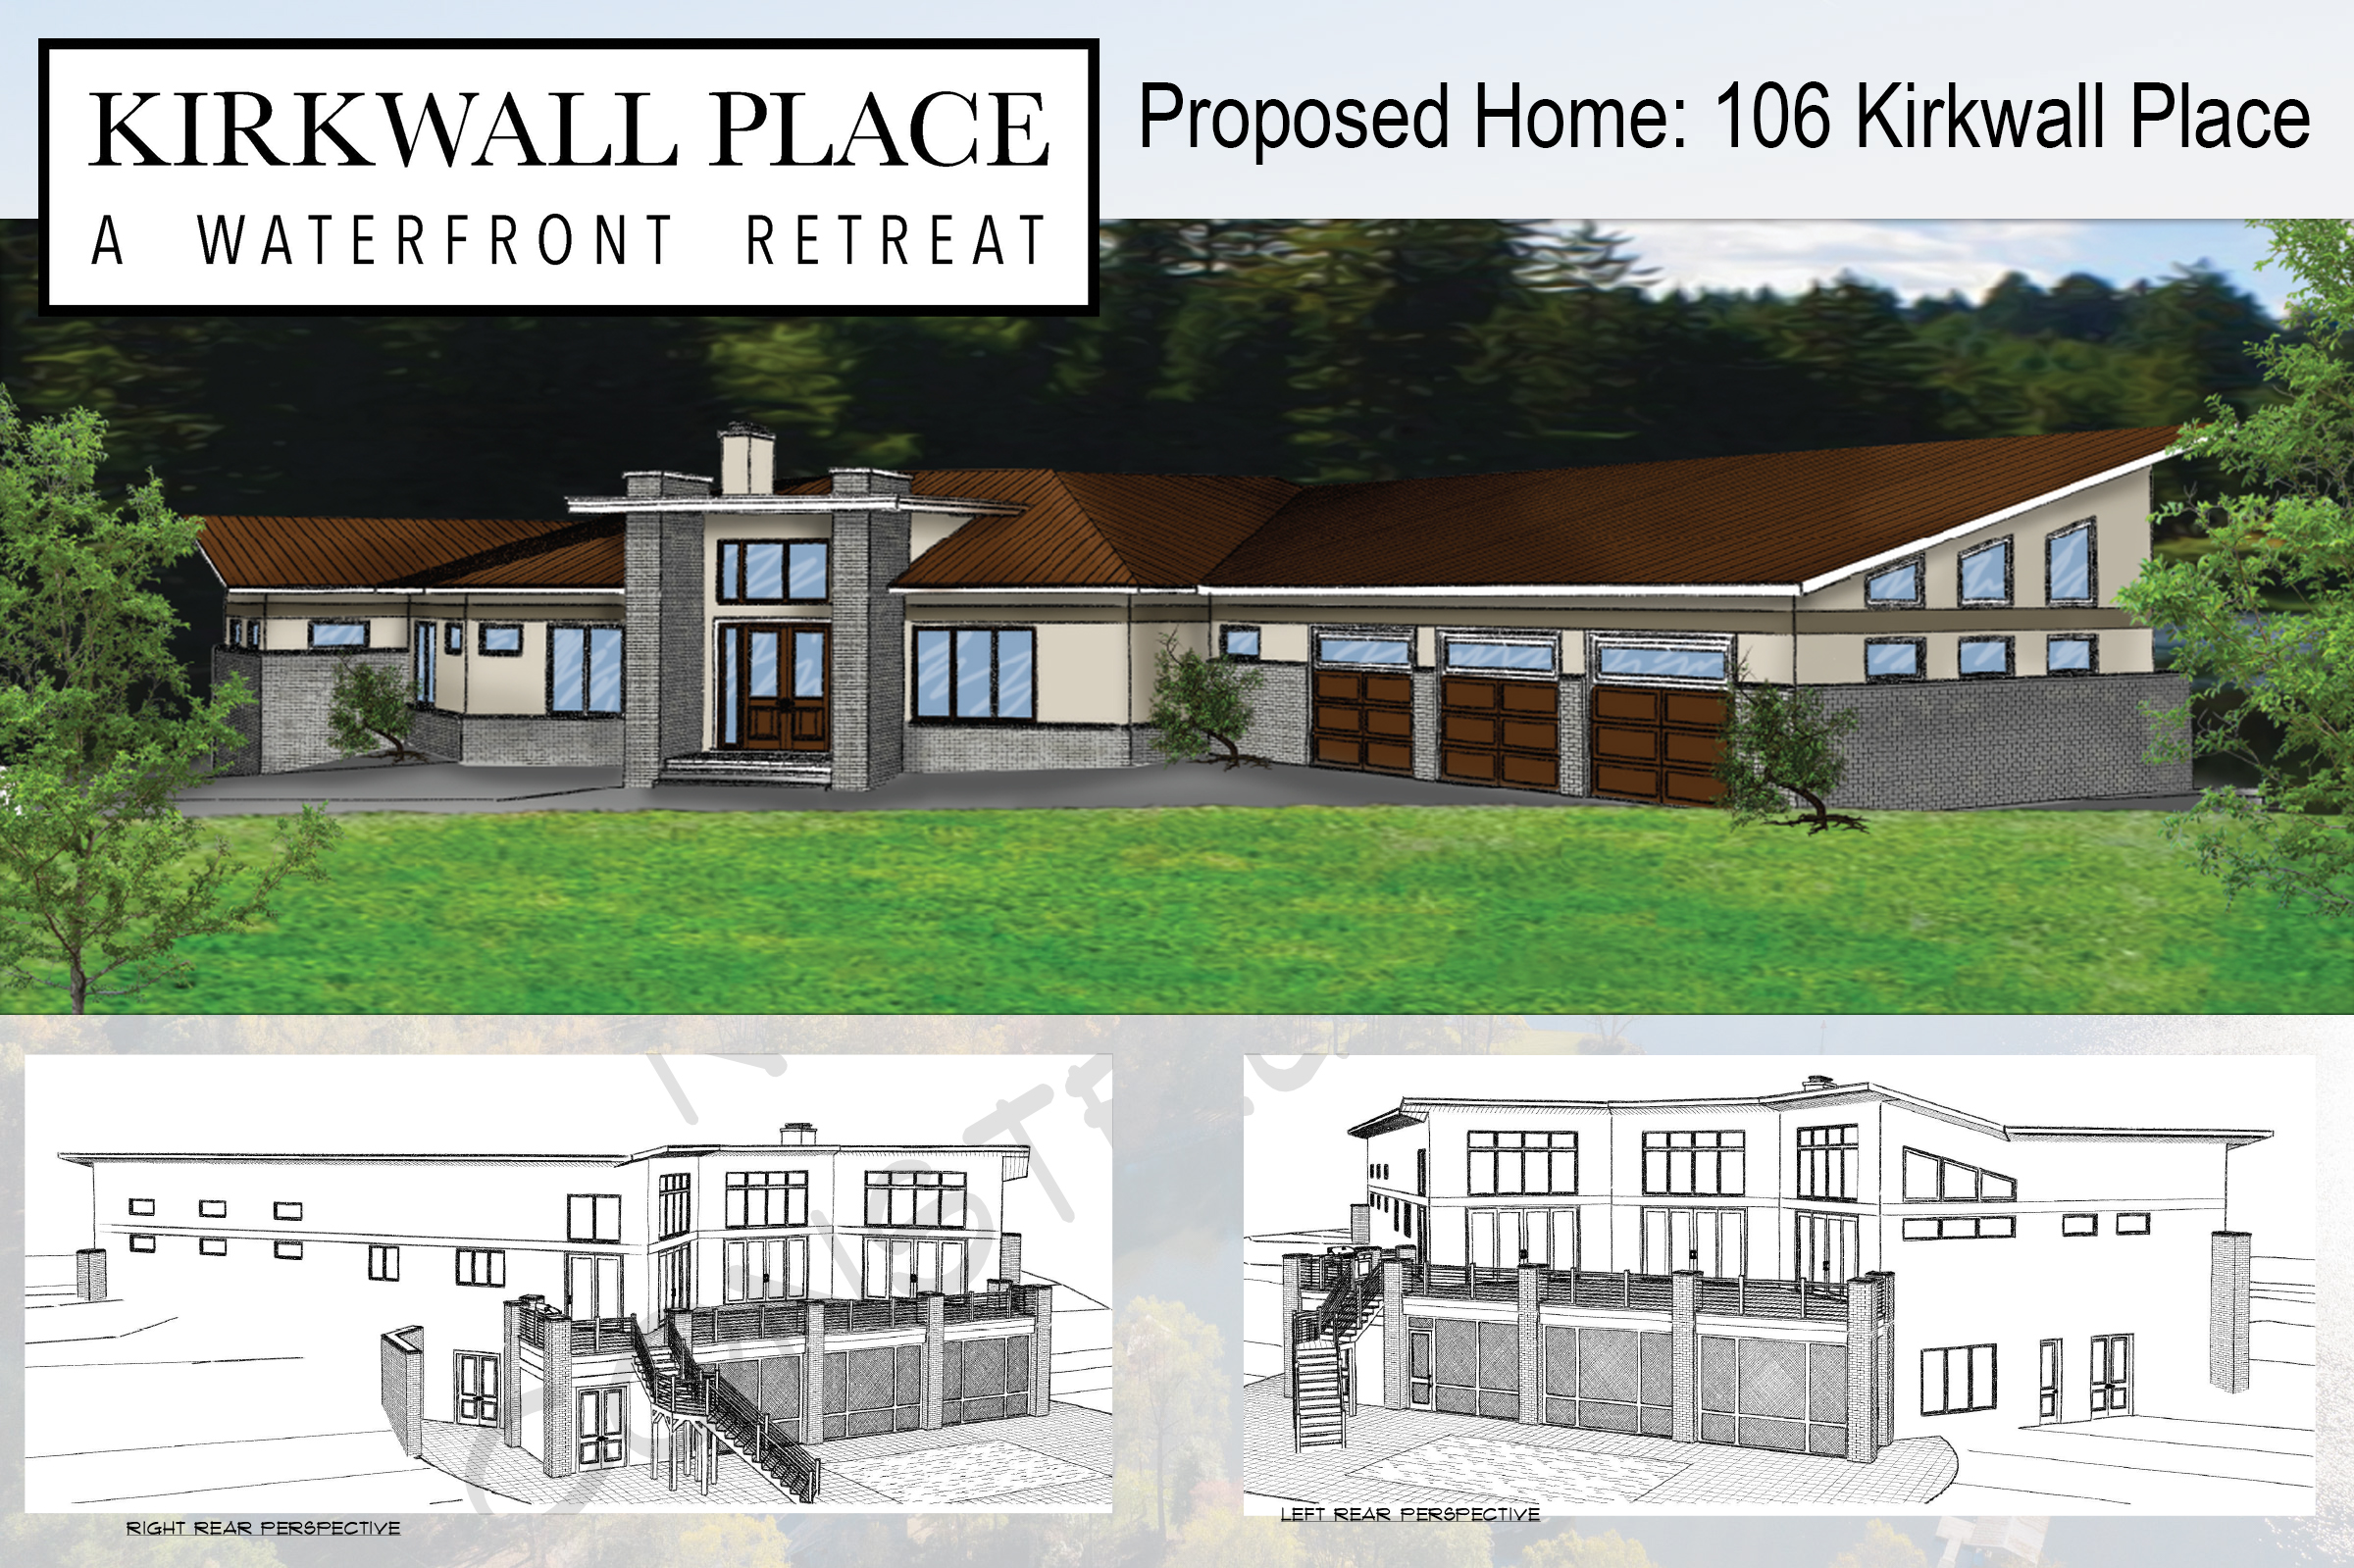 Renderings of Proposed Home